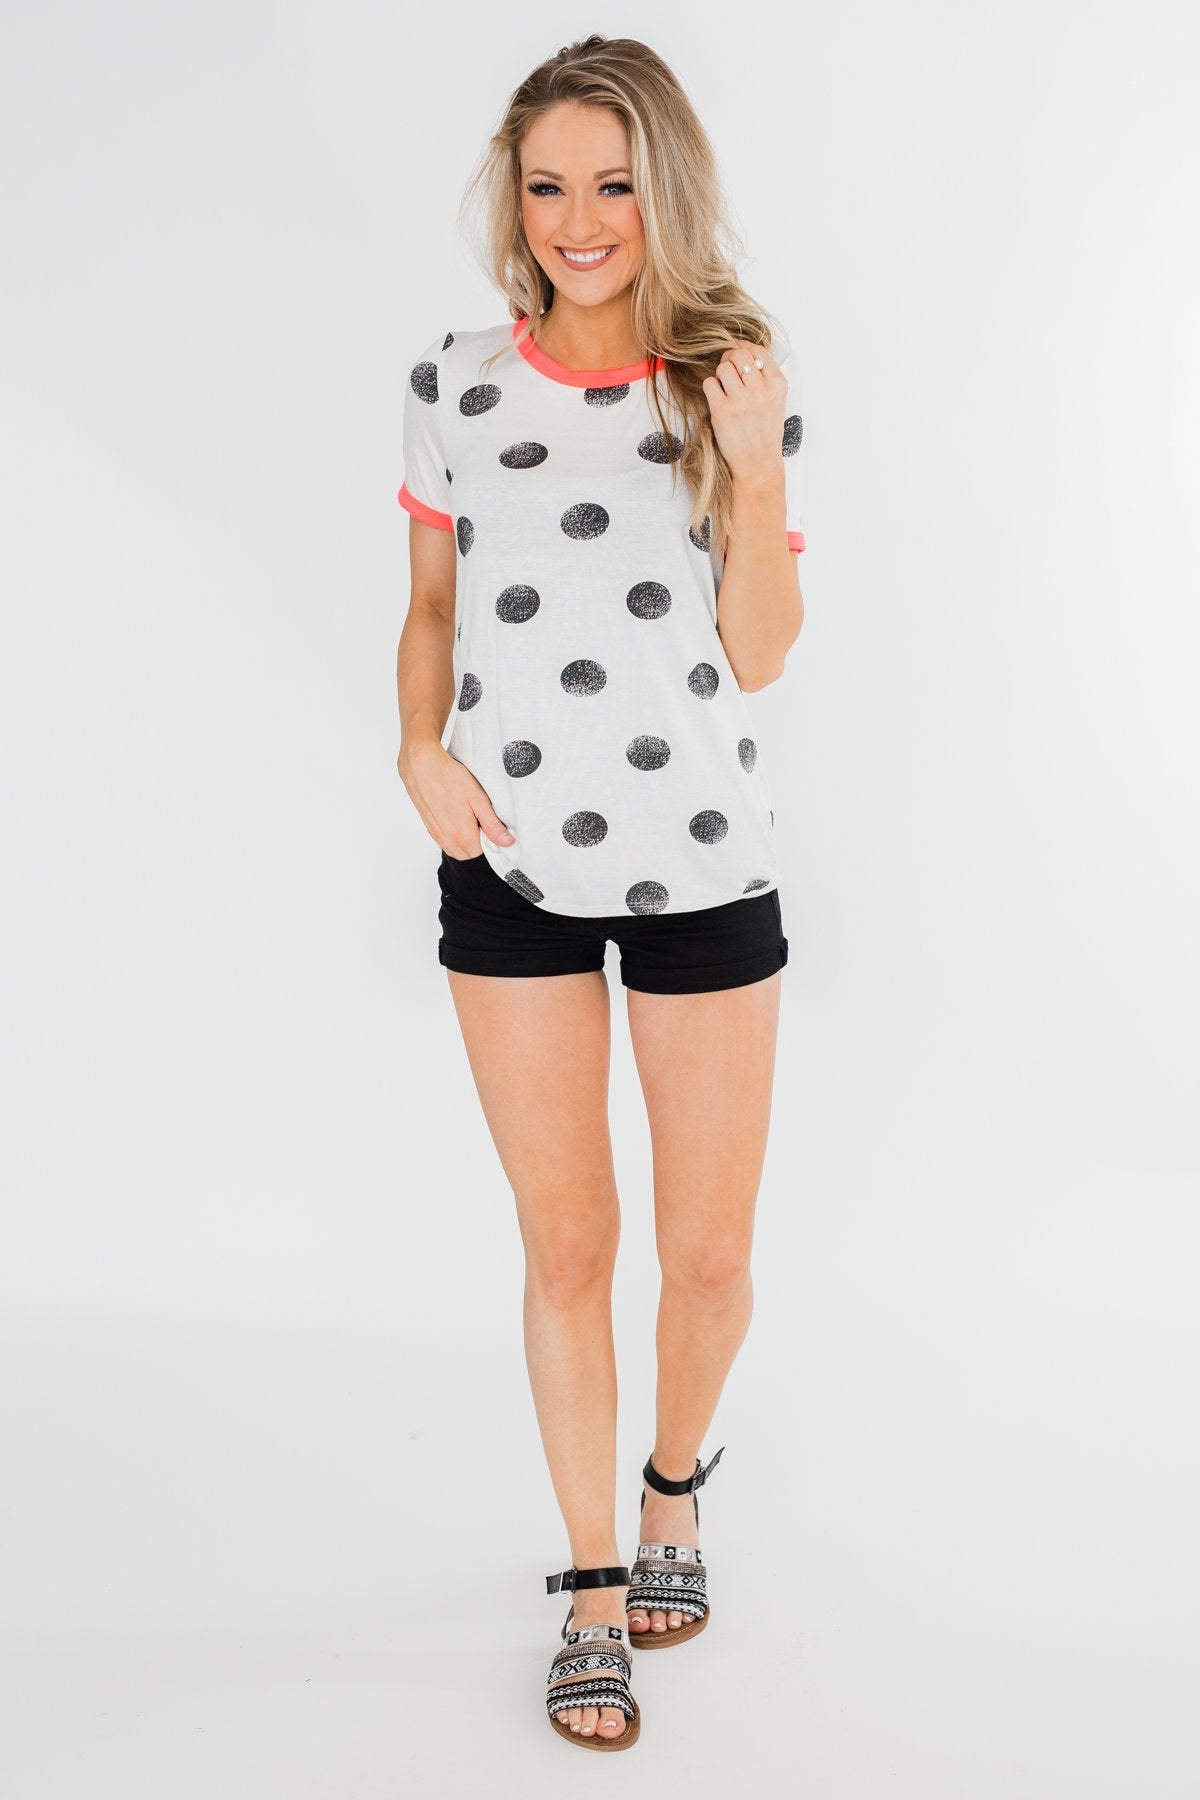 Faded Polka Dot Short Sleeve Top- Ivory & Hot Pink